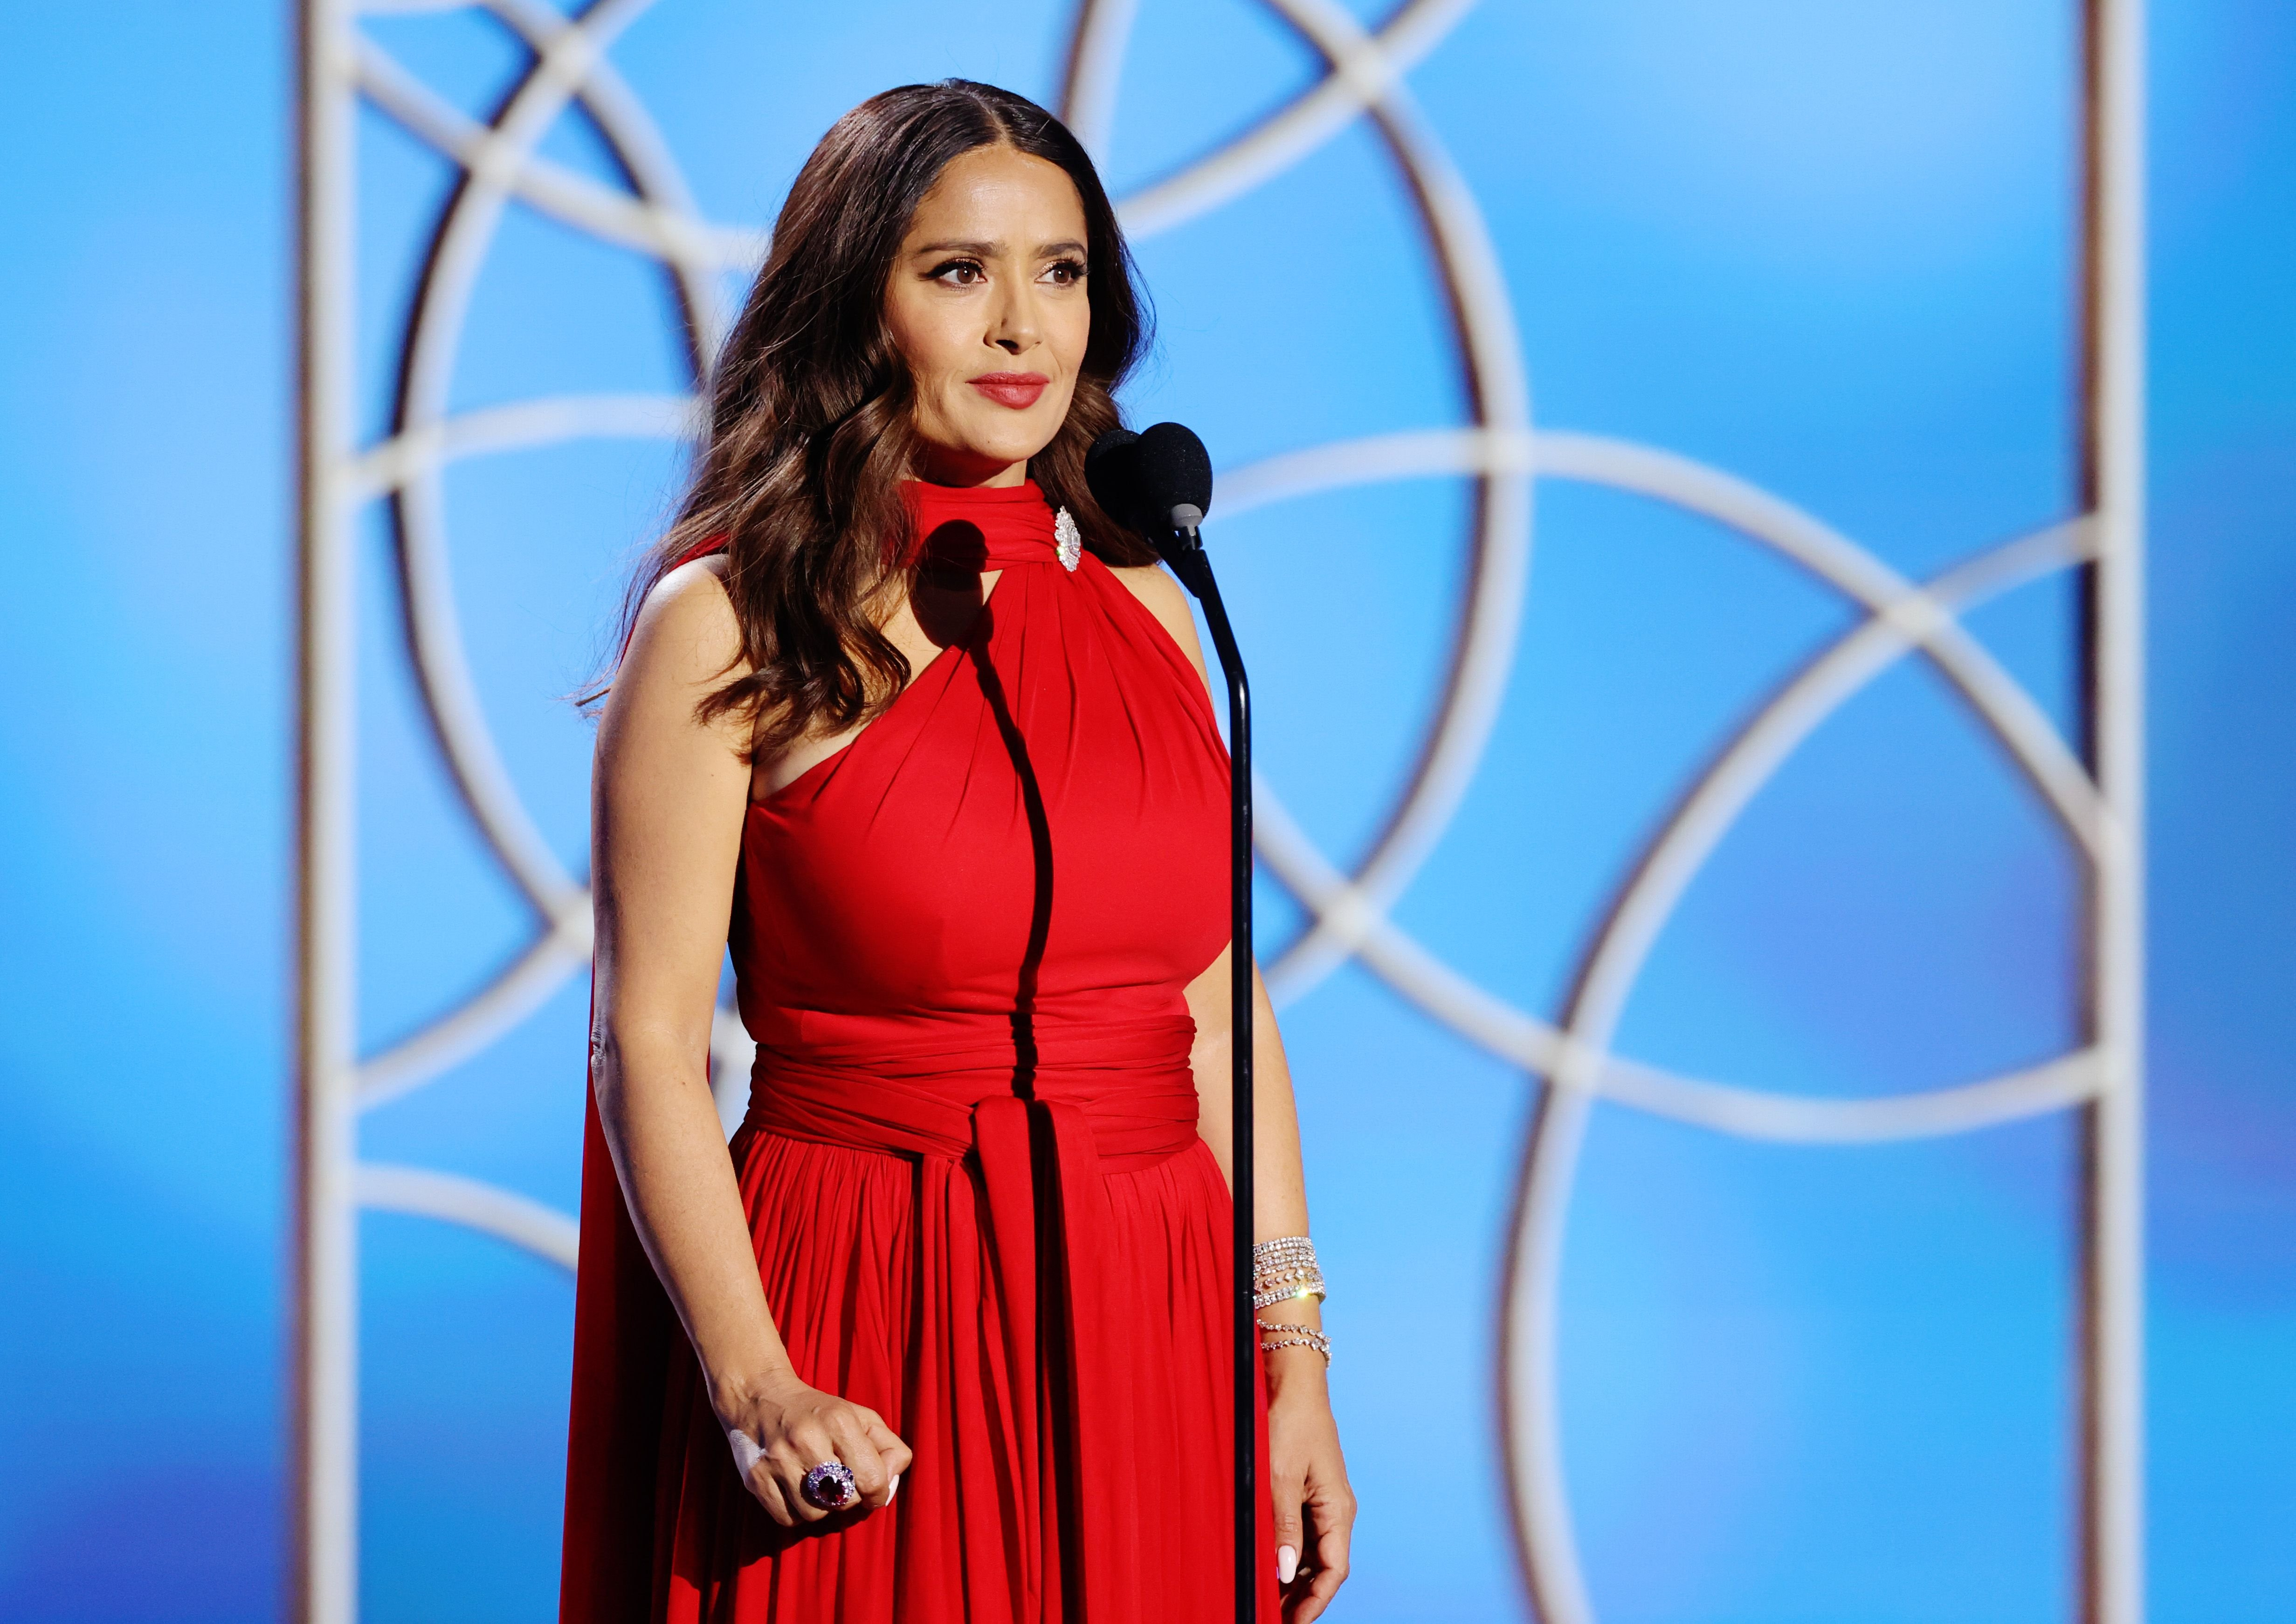 Salma Hayek at the 78th Annual Golden Globe Awards held at The Beverly Hilton and broadcast on February 28, 2021 | Photo: Getty Images